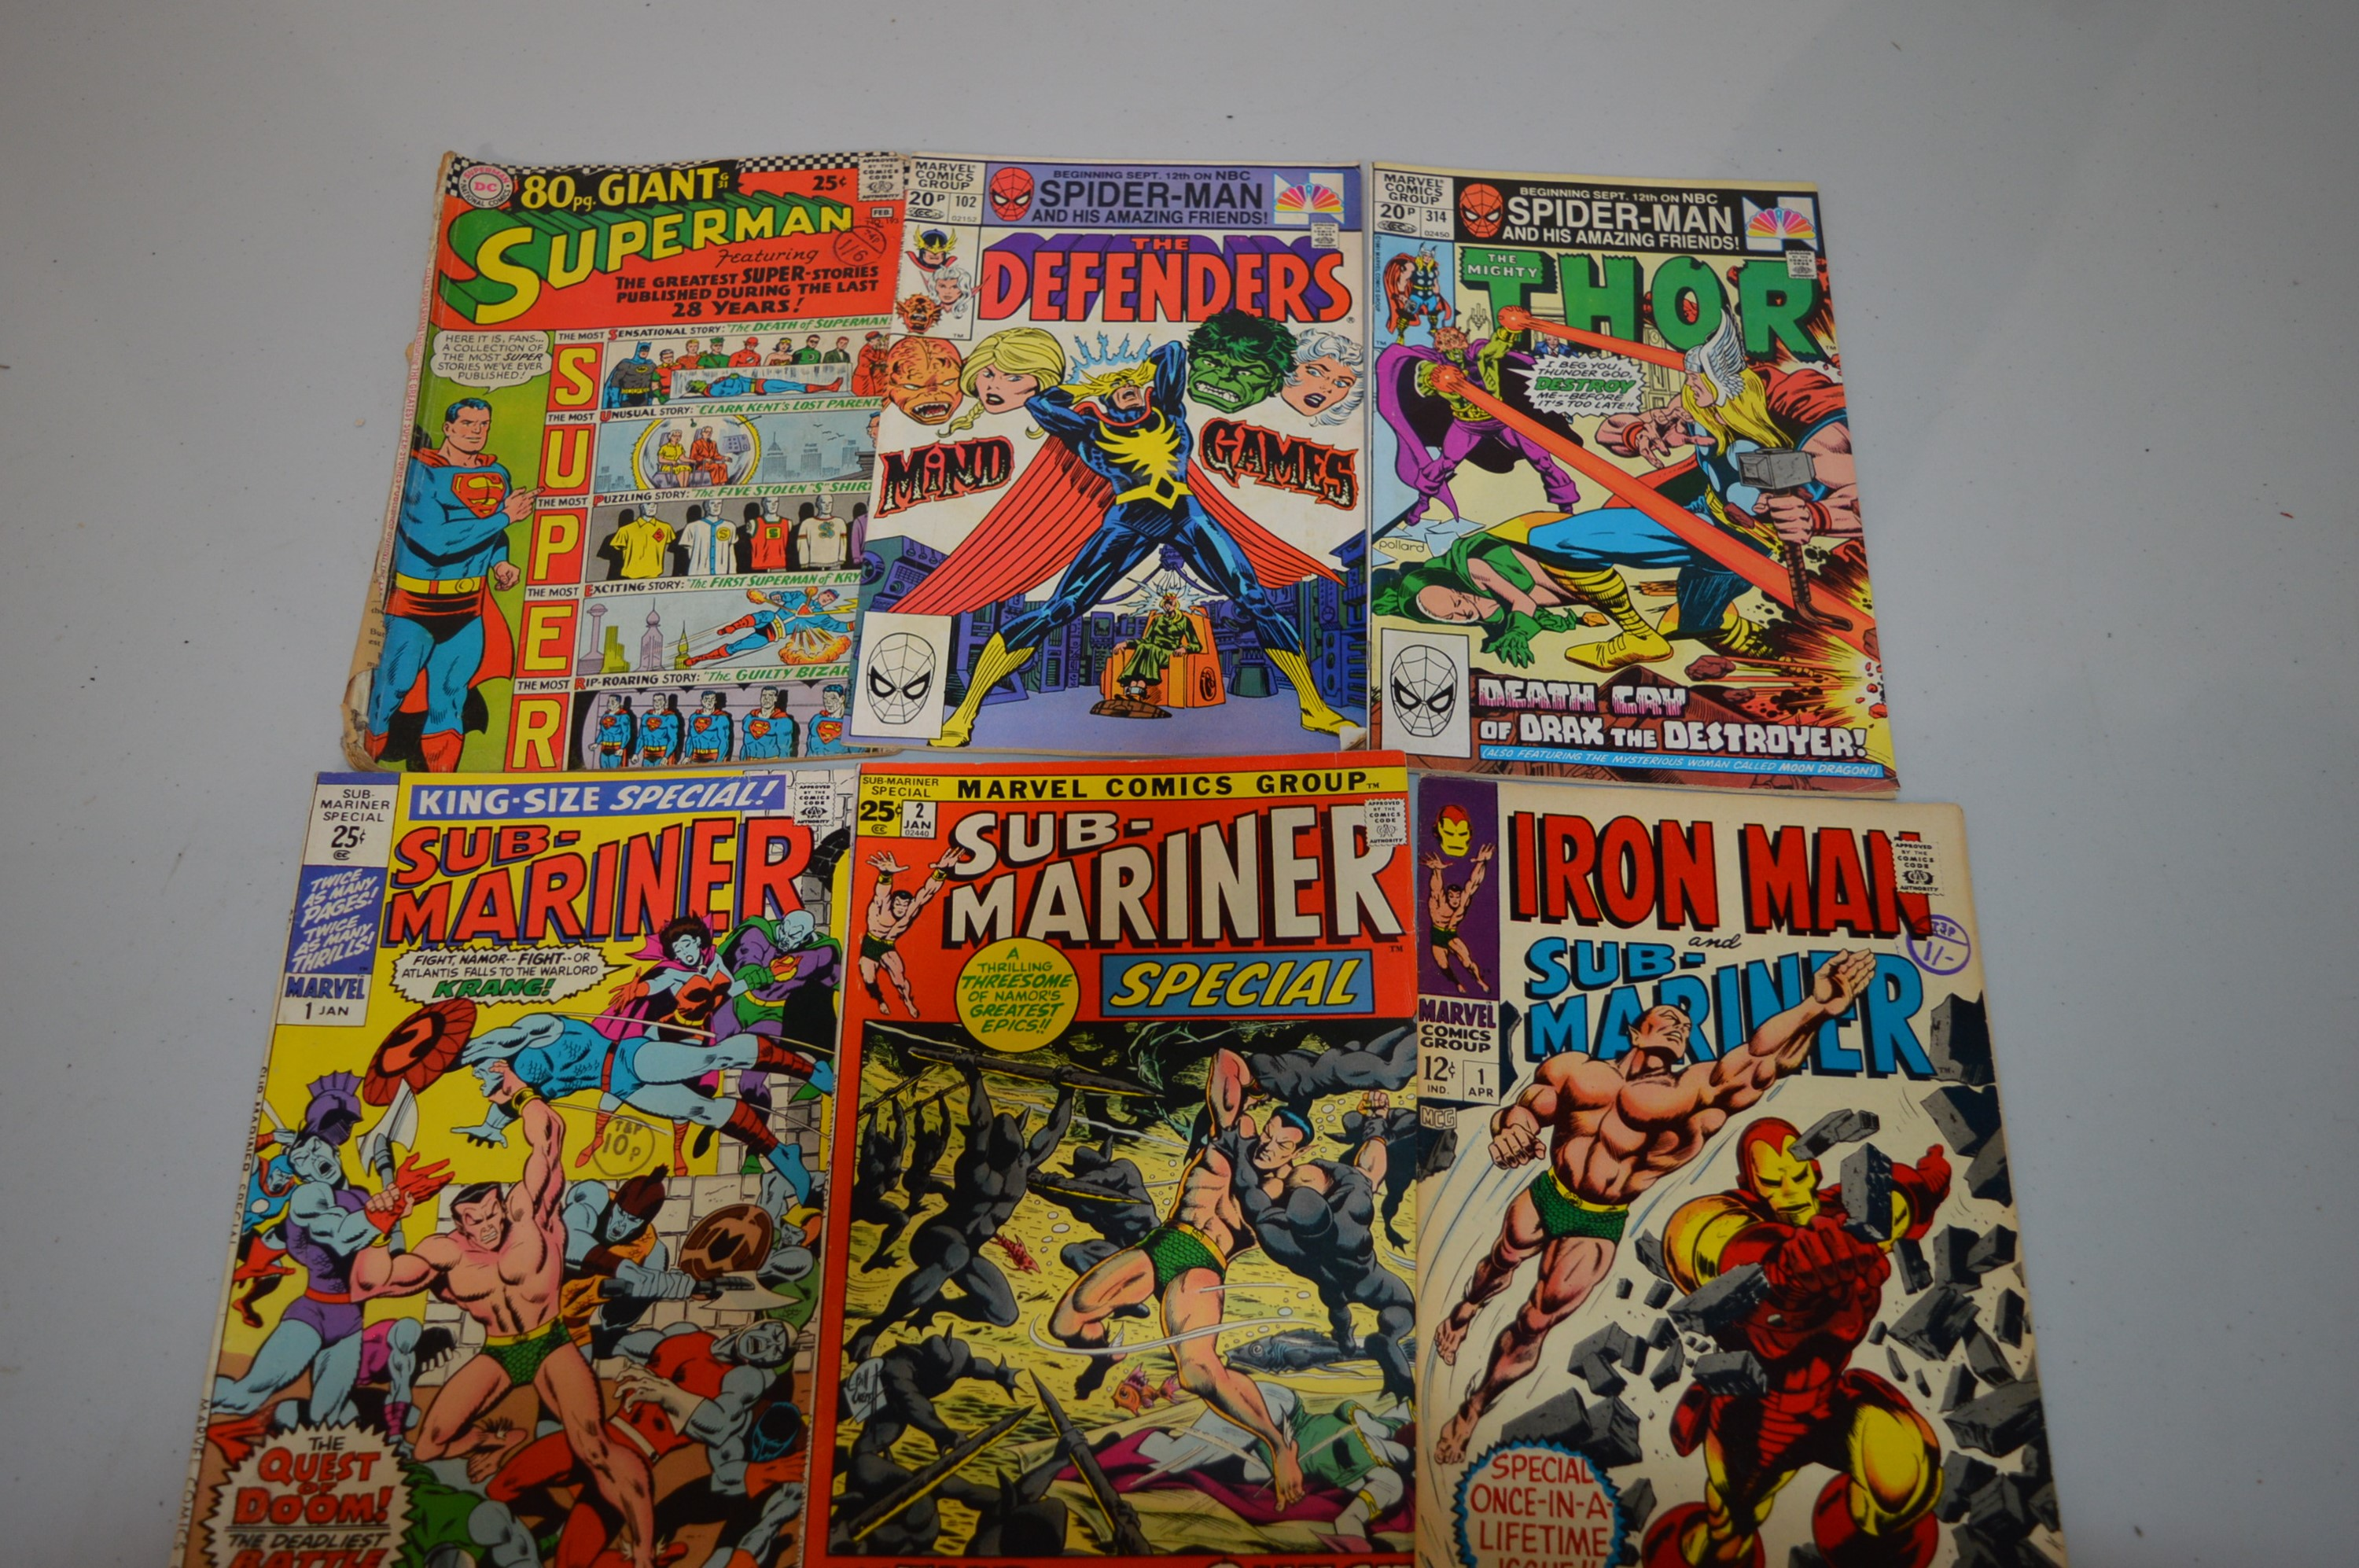 Iron Man and Sub-Mariner; and other comics.